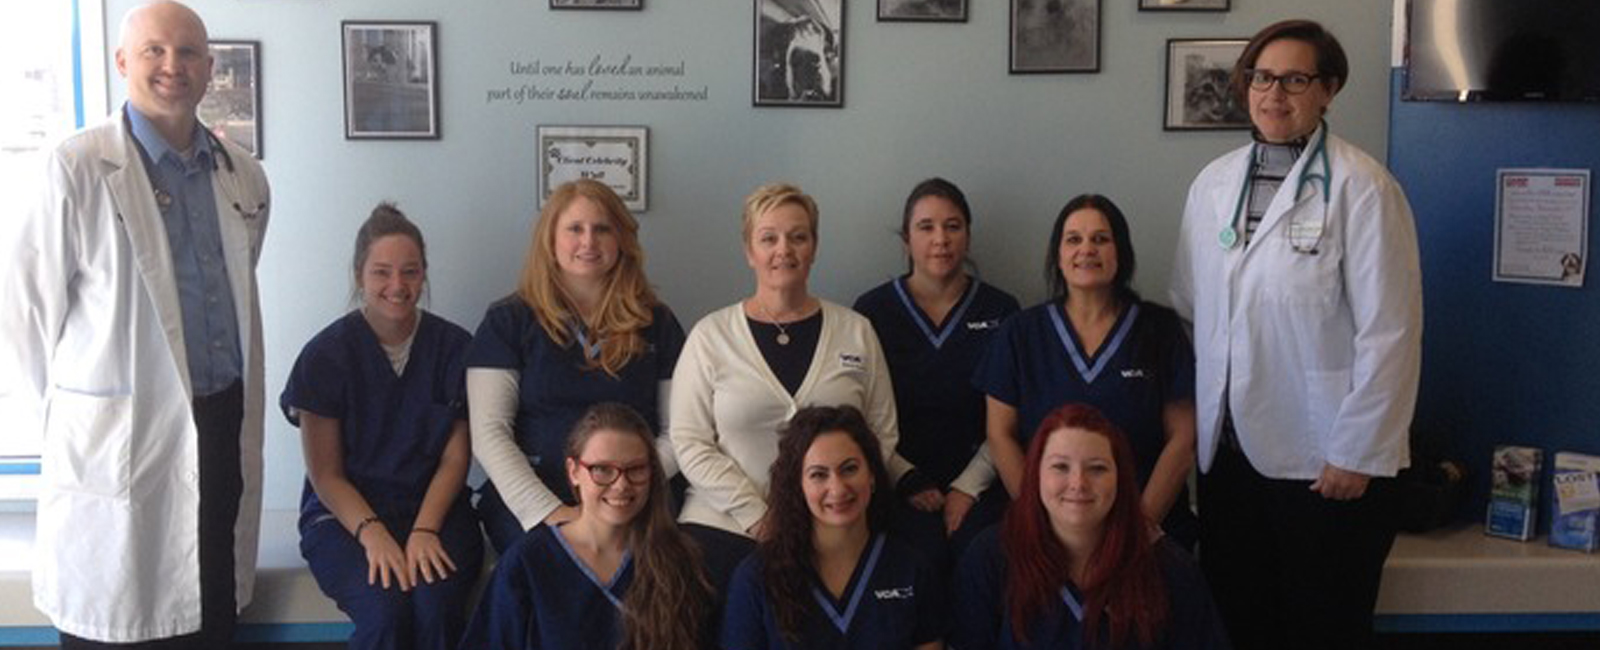 Homepage Team Picture of VCA St. Clair Shores Animal Hospital